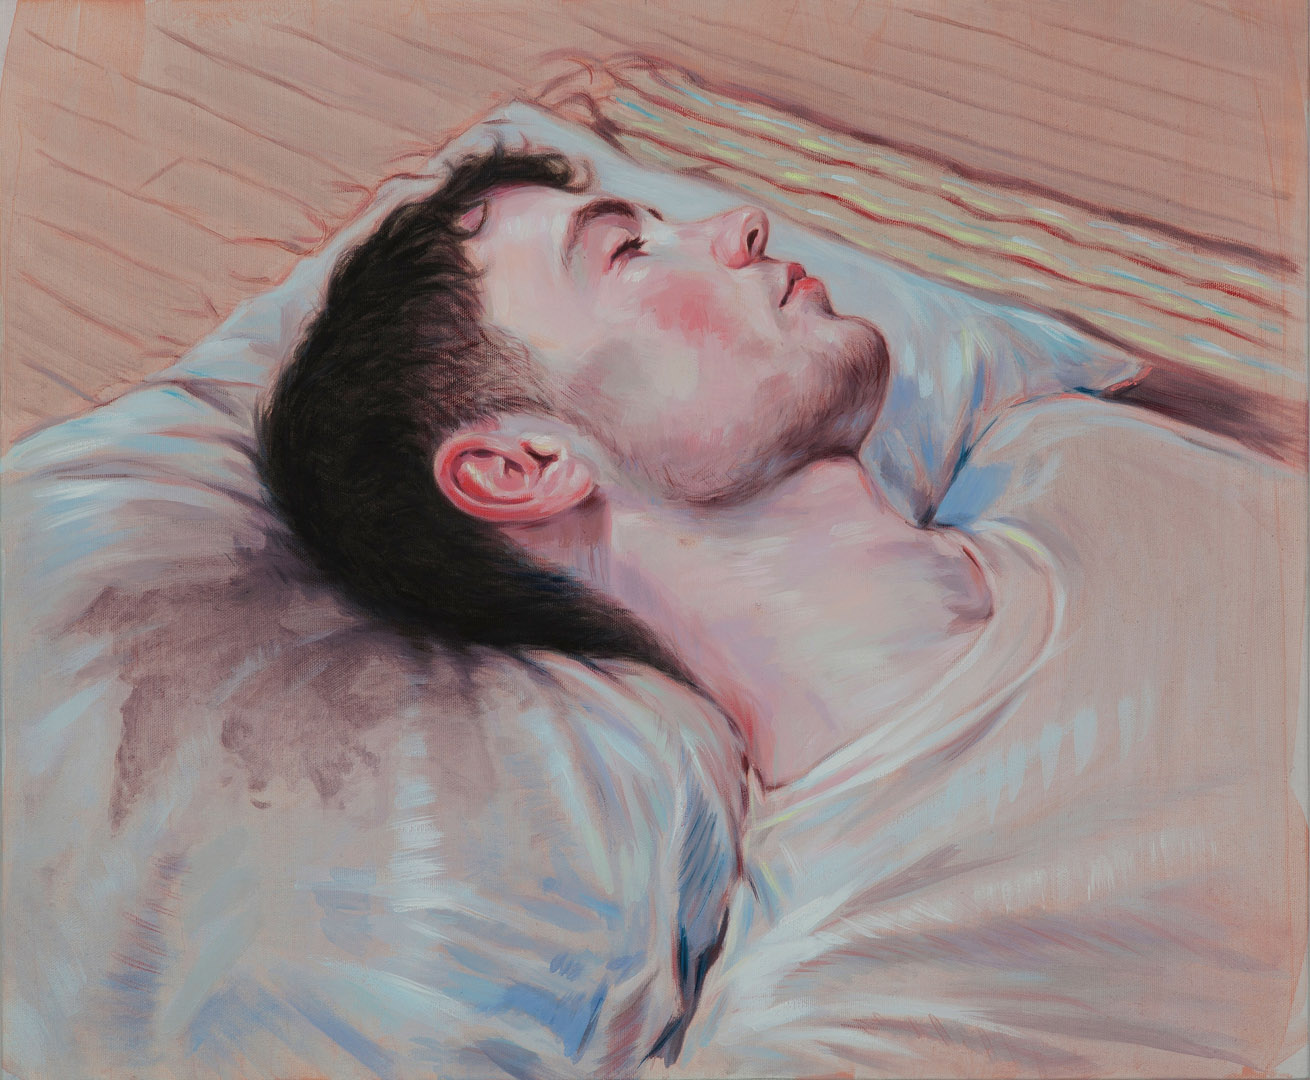 Kris Knight, Black Dye Pillowcase, 2015, oil on canvas, 24 x 20 inches.